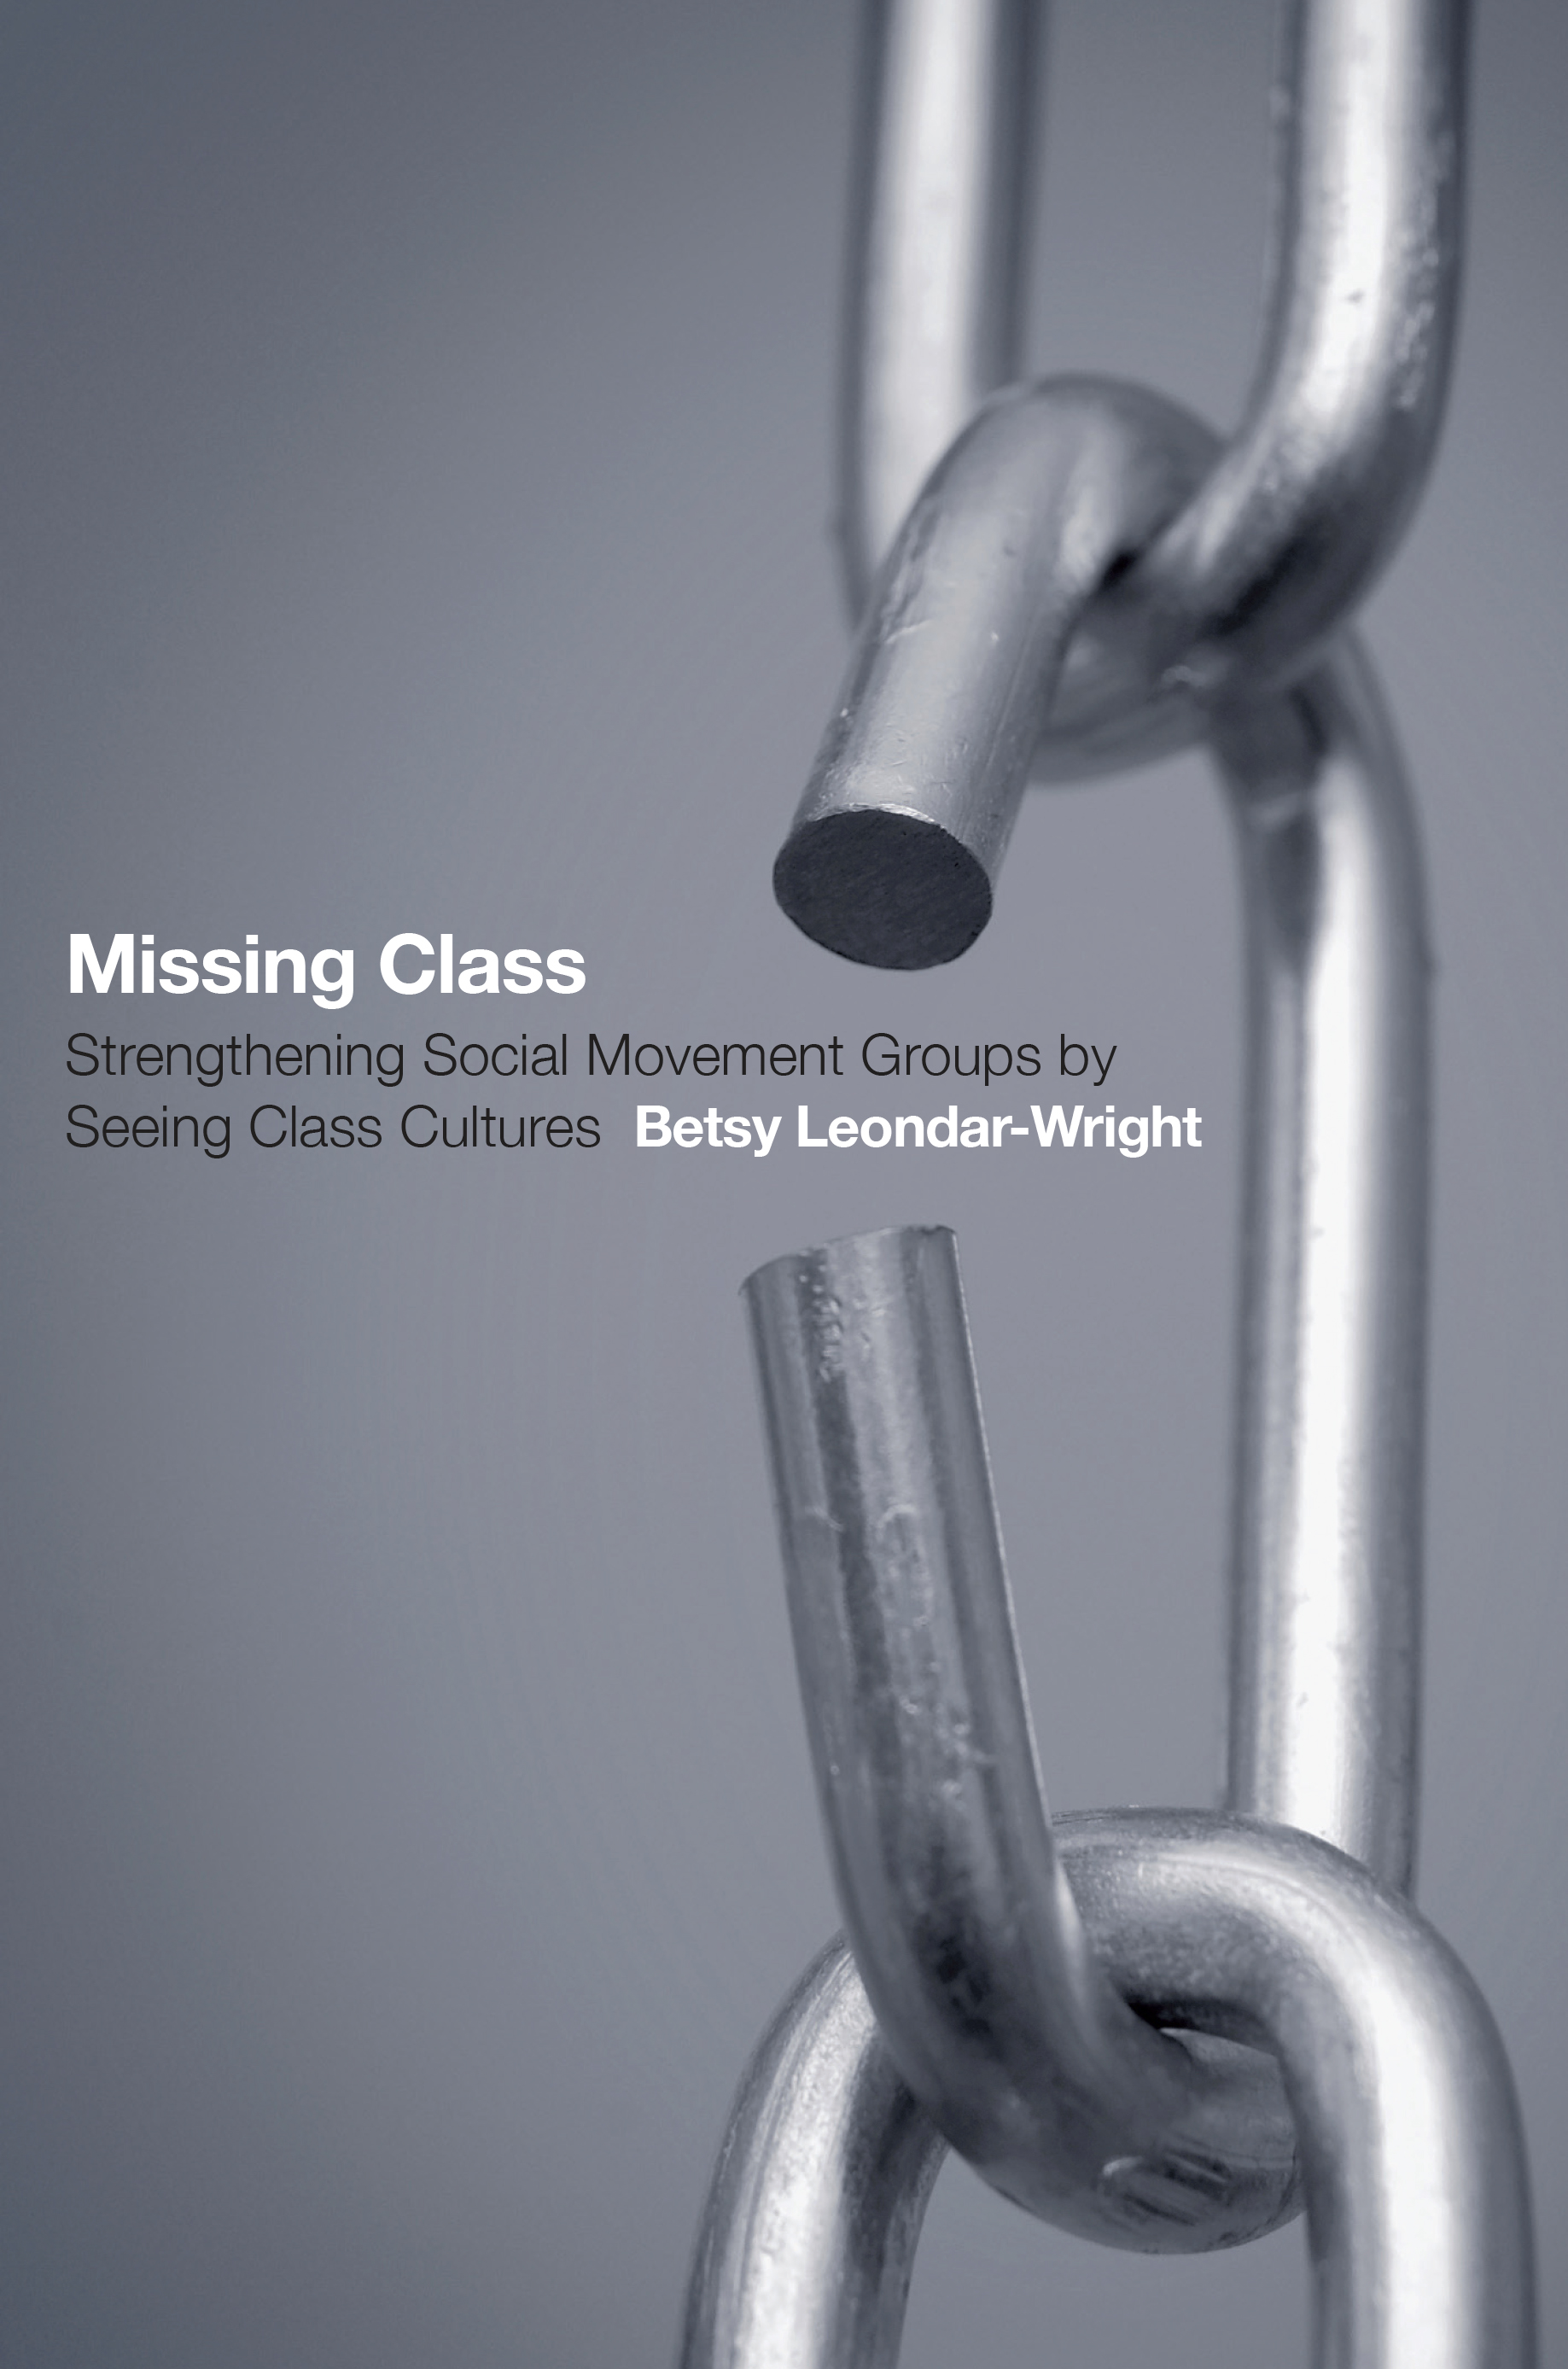 "Missing Class: How Seeing Class Cultures Can Strengthen Social Movement Groups - Betsy Leondar-Wright - <span class=""date-display-single"">10/17/2014 - 5:30pm</span>"